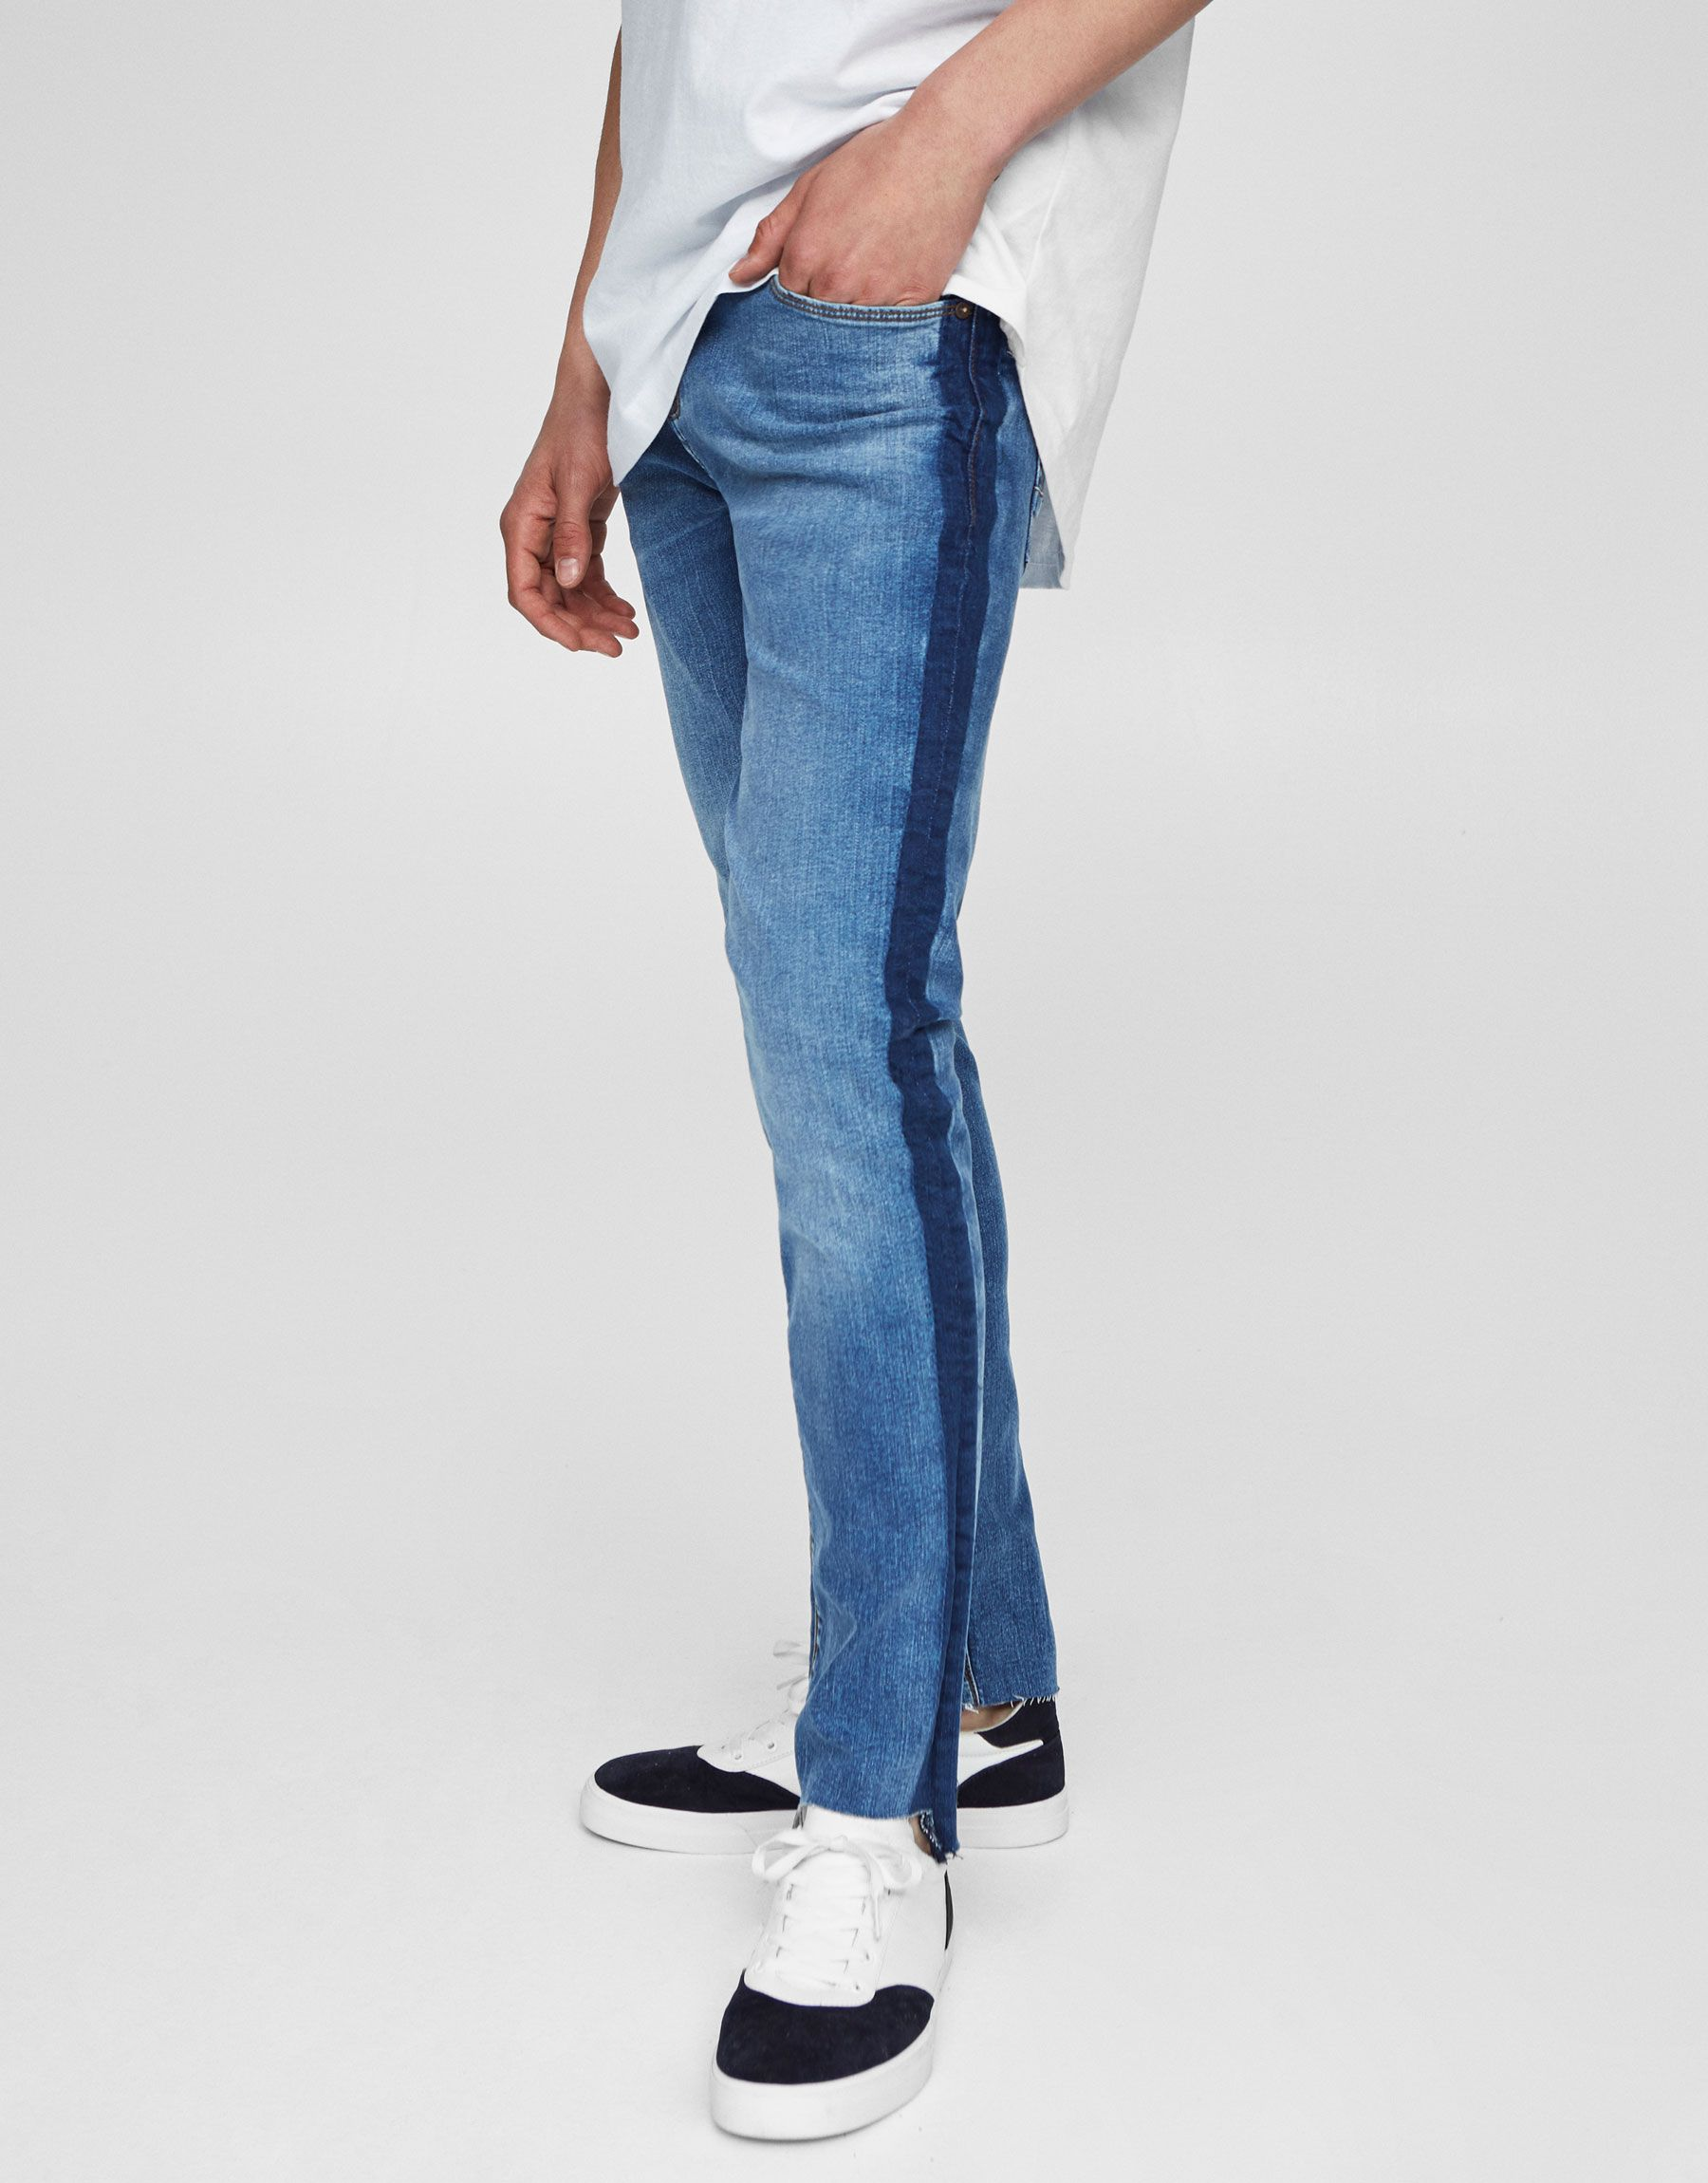 Jeans skinny fit delavado - Jeans - Ropa - Ropa - Hombre - PULL BEAR España 2bc2f4419f22